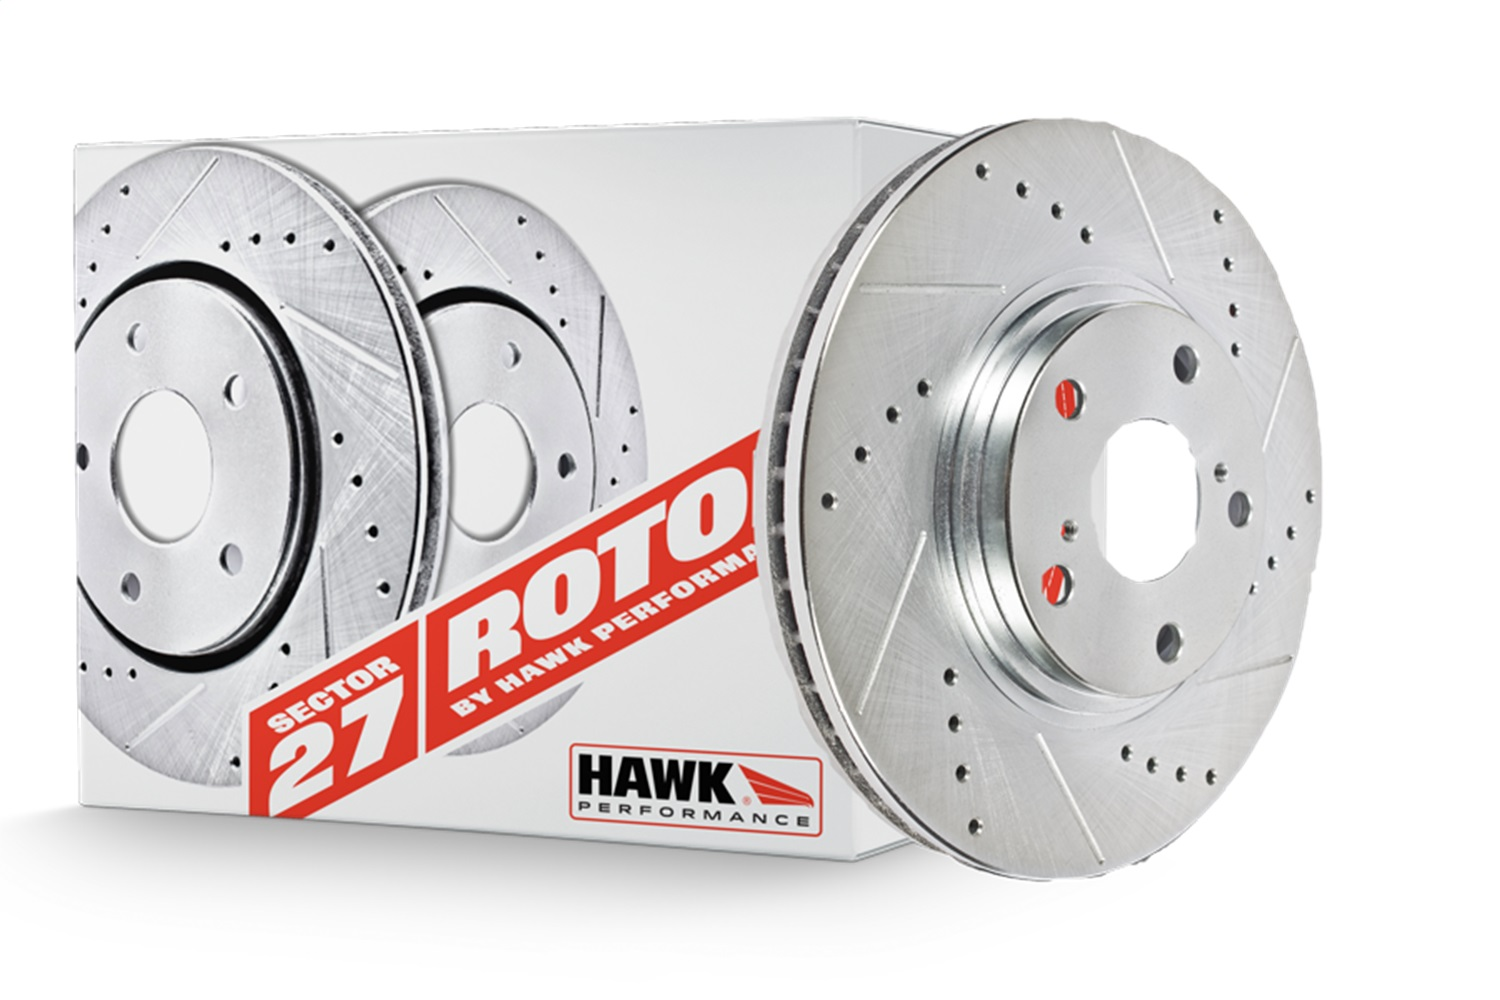 Hawk Performance Sector 27 Brake Rotors Hawk Performance HR4187 Sector 27 Rotor